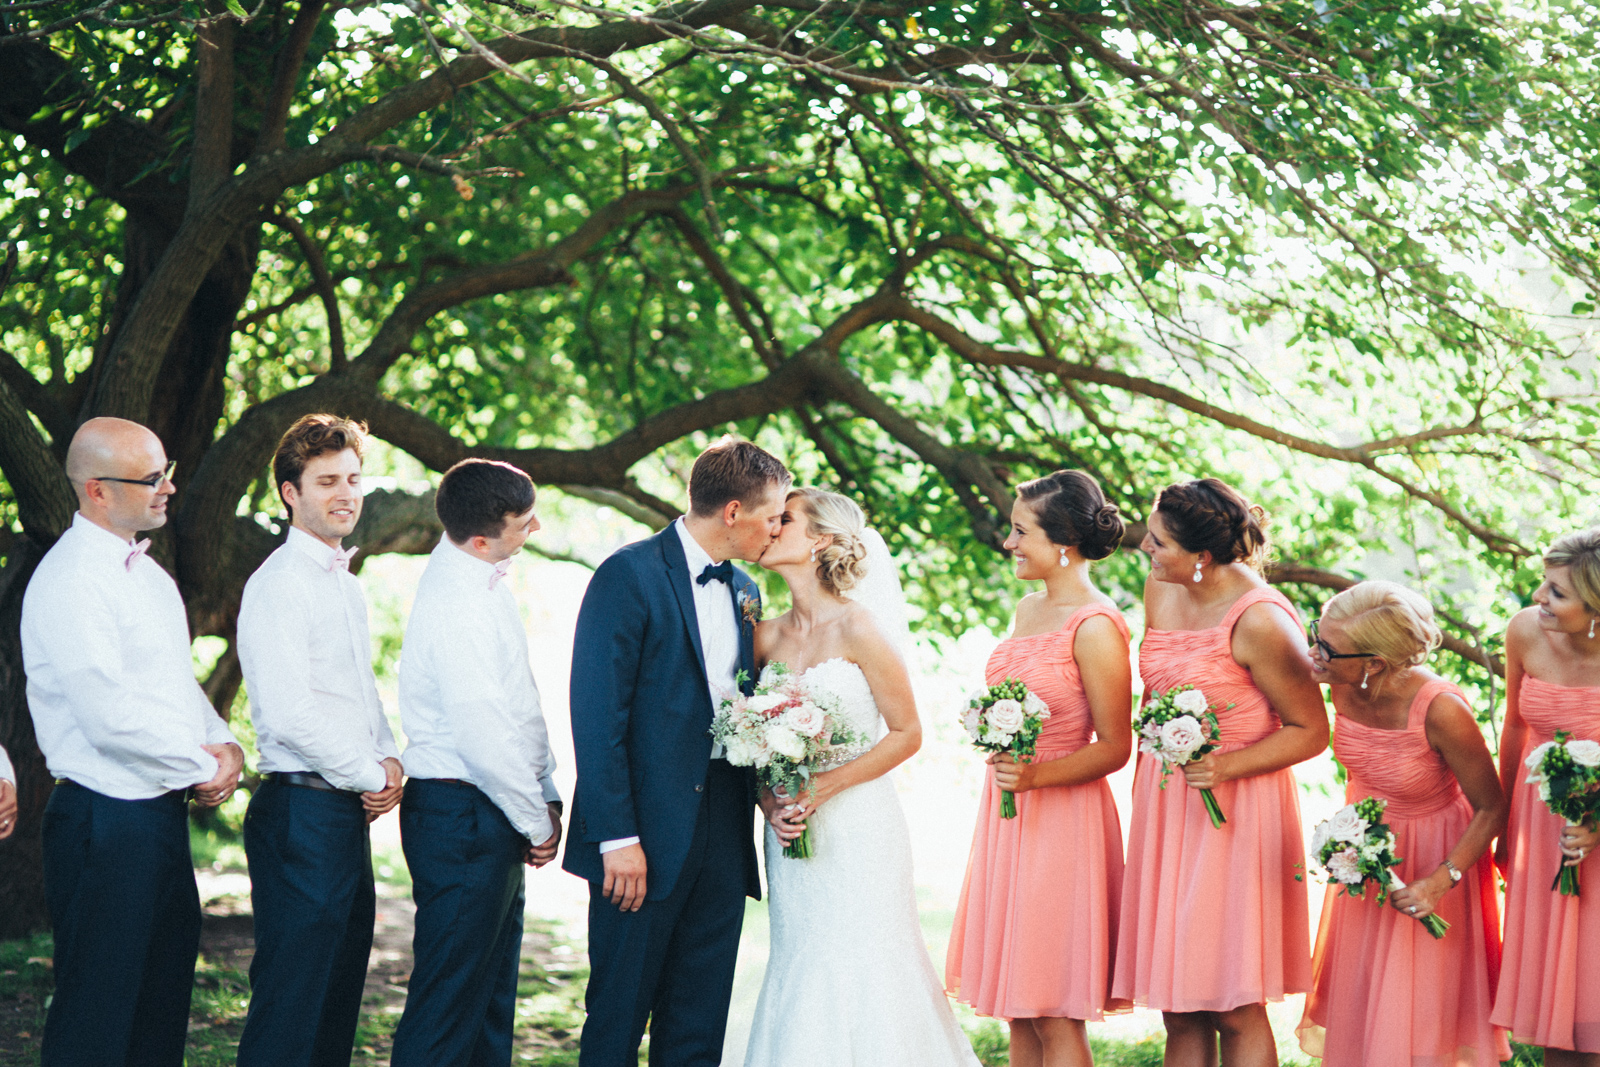 Bride and groom and wedding party in the country